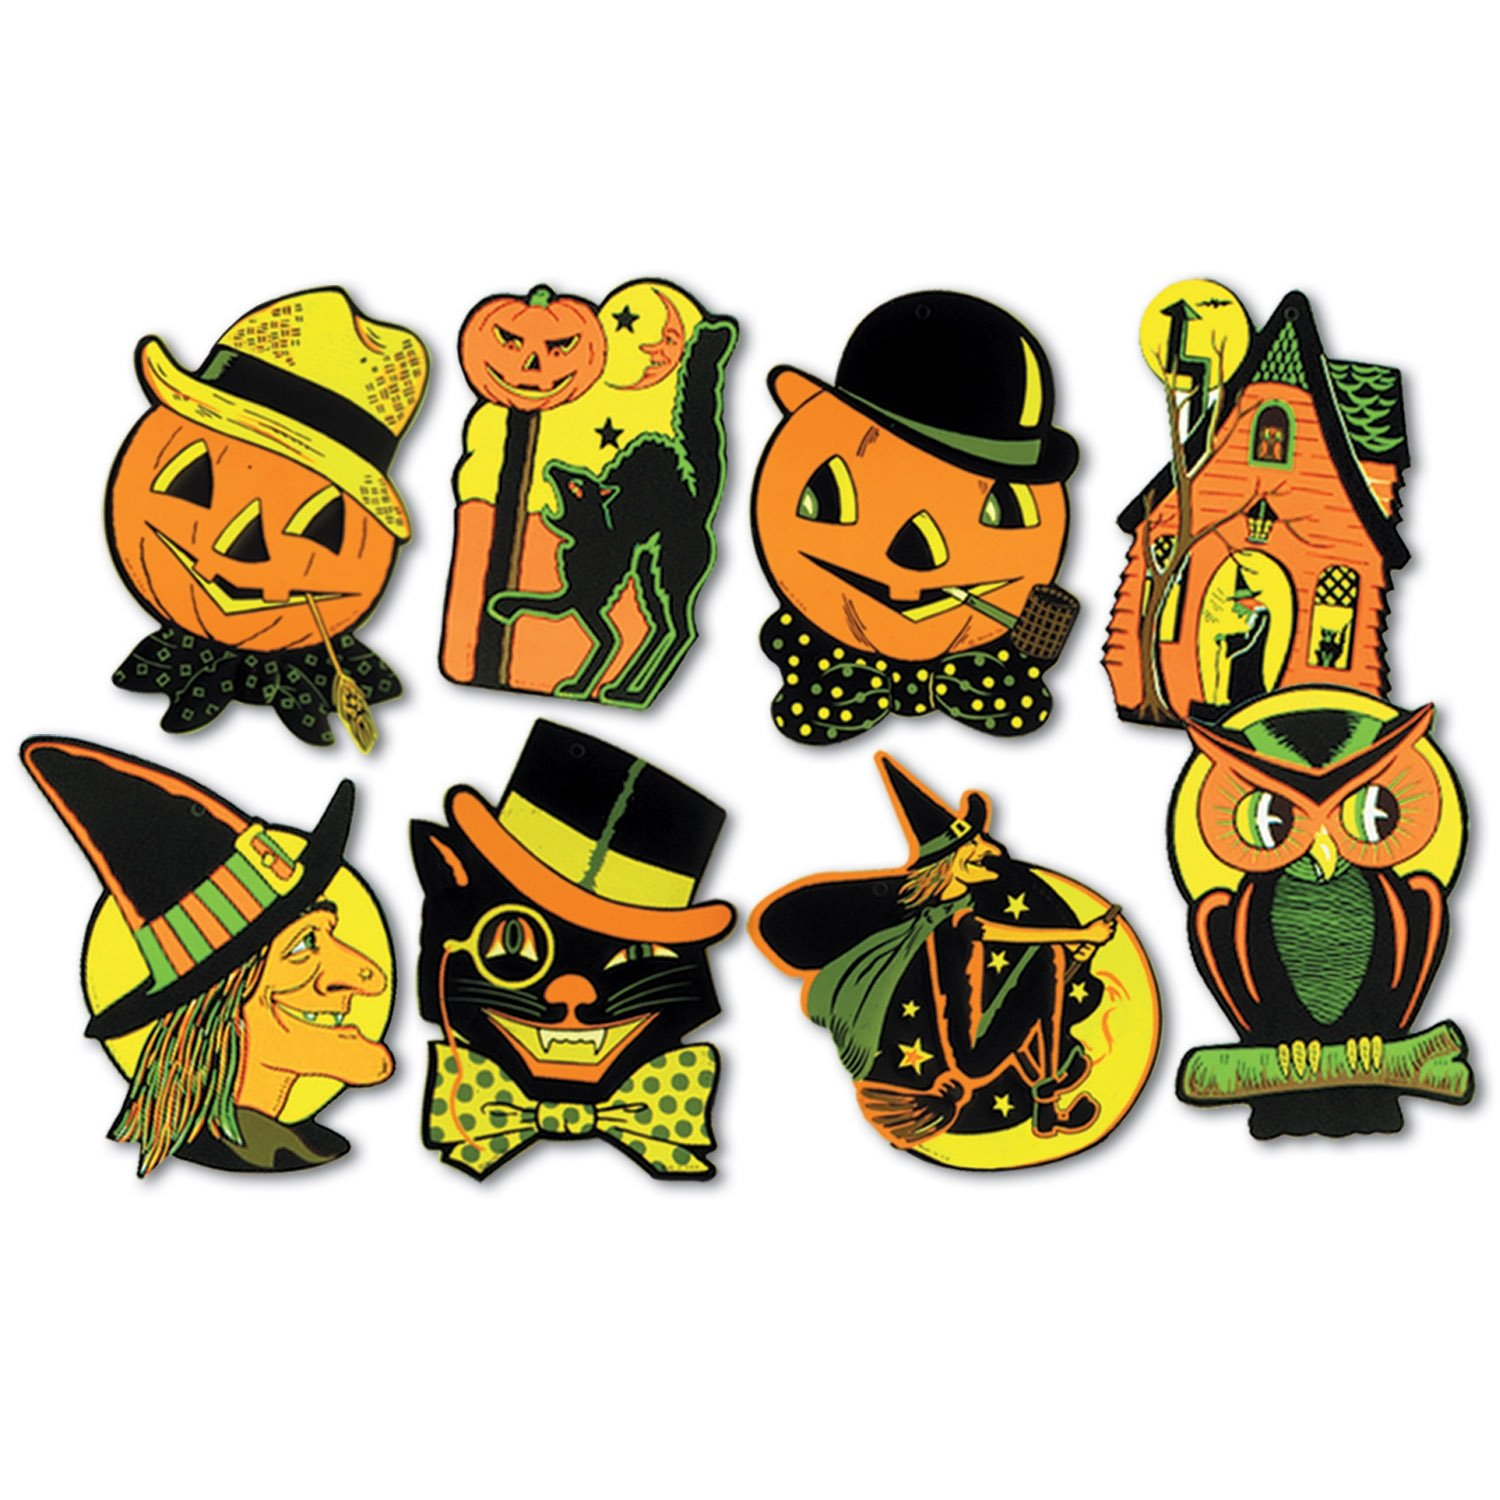 Beistle 01009 Packaged Halloween Cutouts, 8.5'' - 9.25'', 4 Cutouts In Package